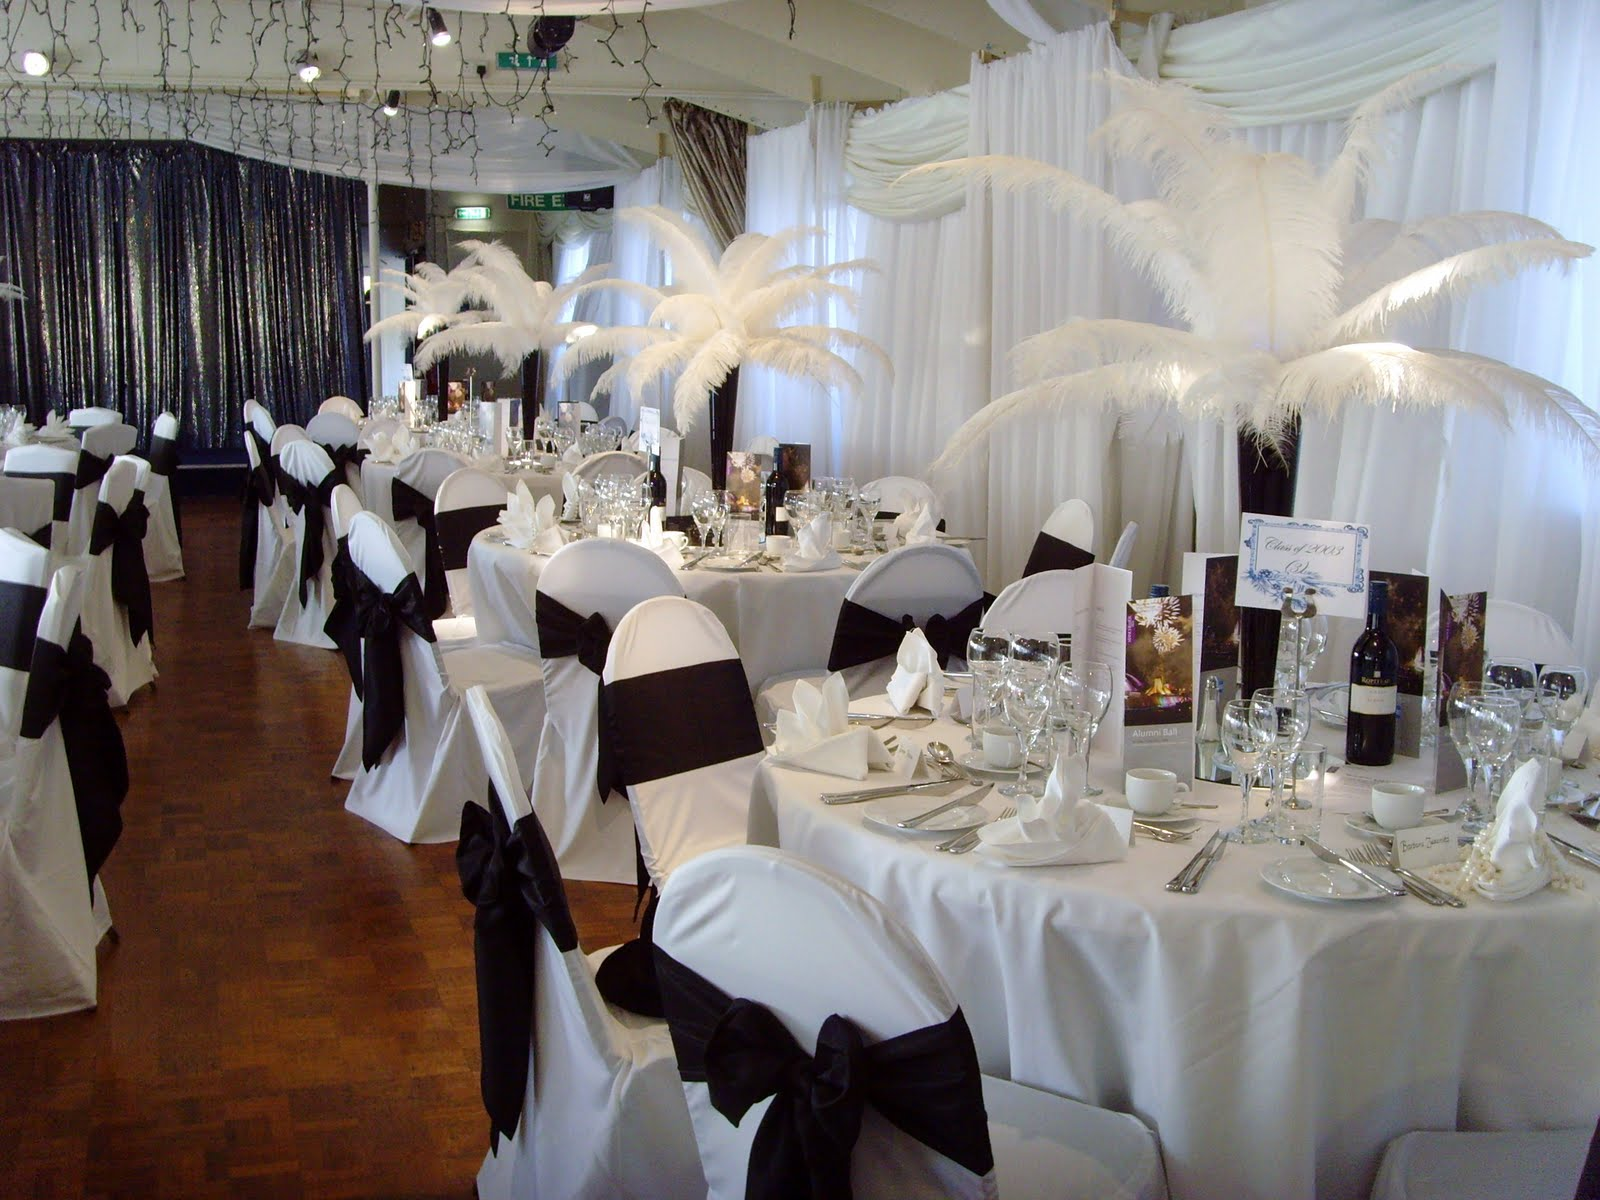 The best wedding decorations wedding venues decorations guide for White wedding table decorations